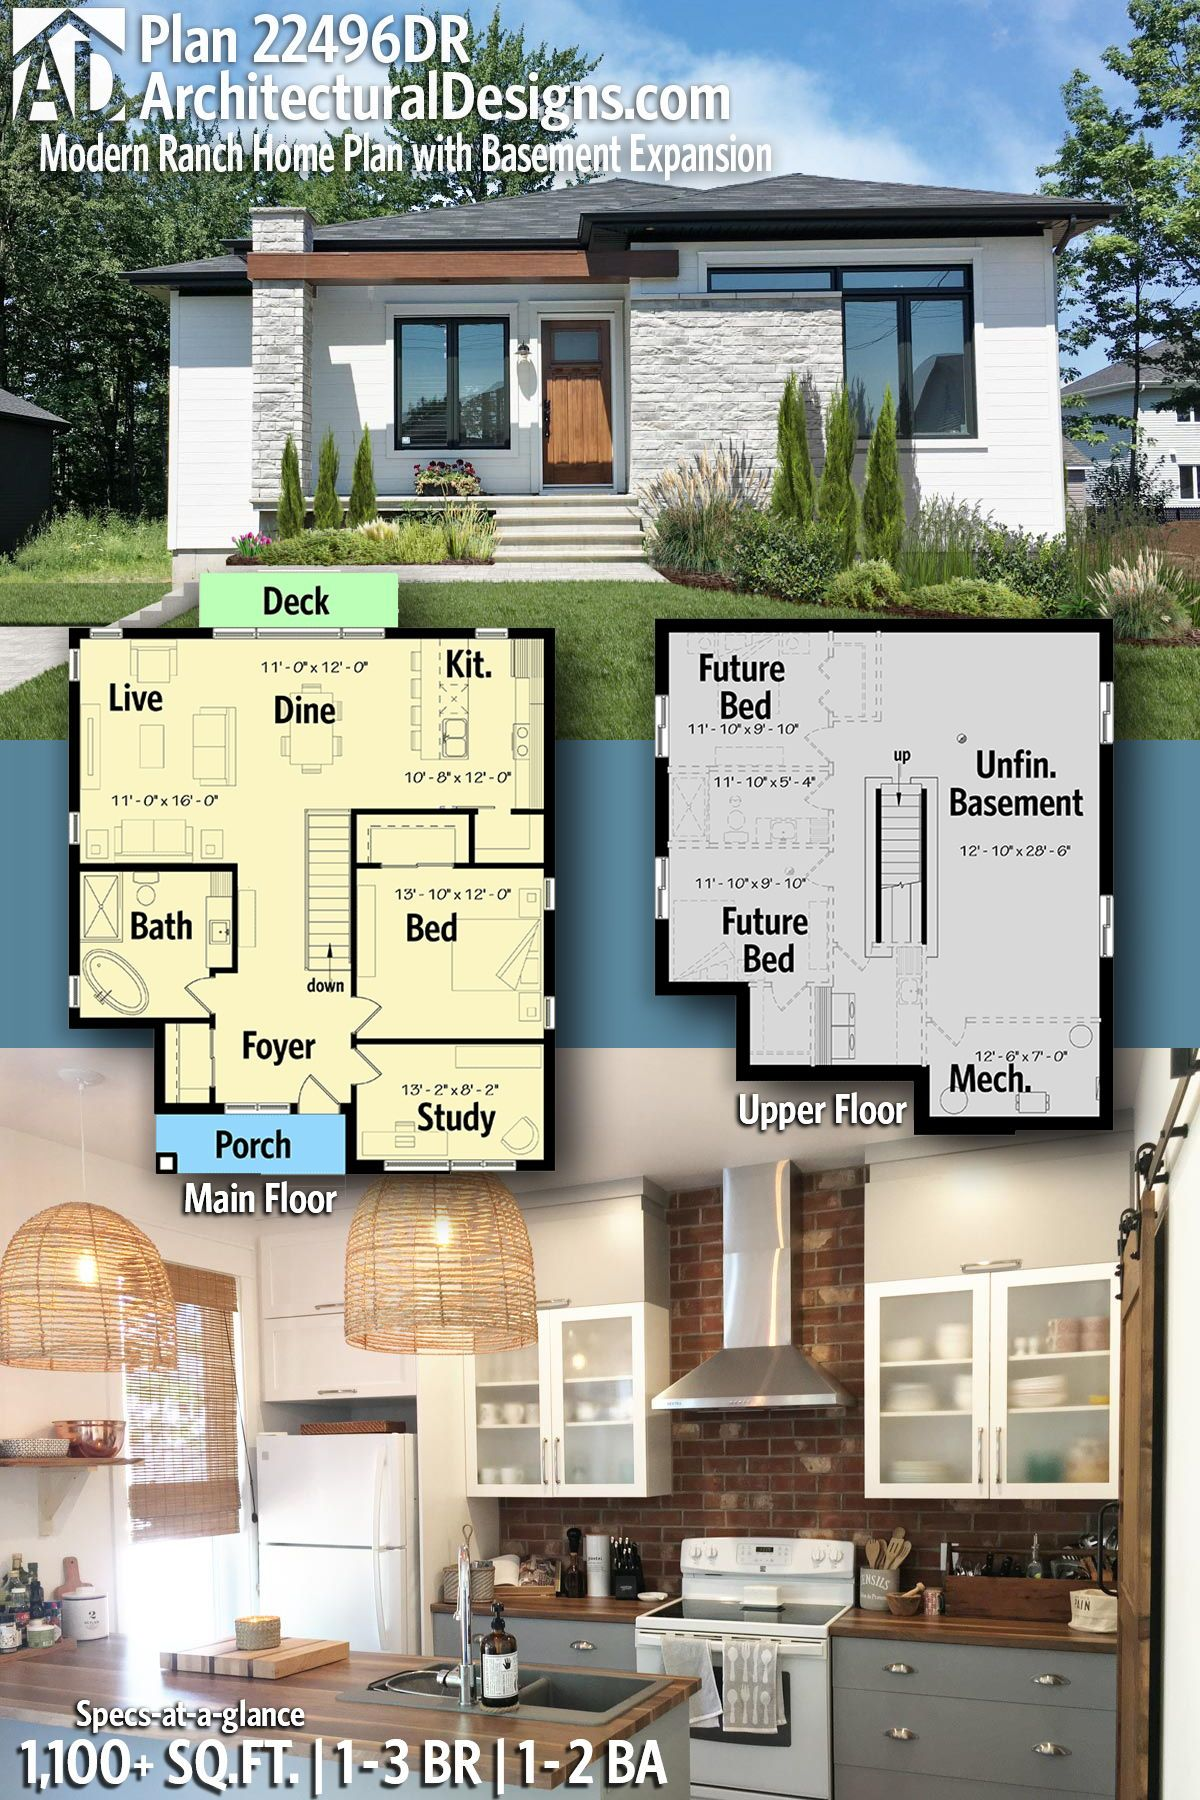 Plan 22496dr Modern Ranch Home Plan With Basement Expansion Ranch House Plans House Plans Basement House Plans